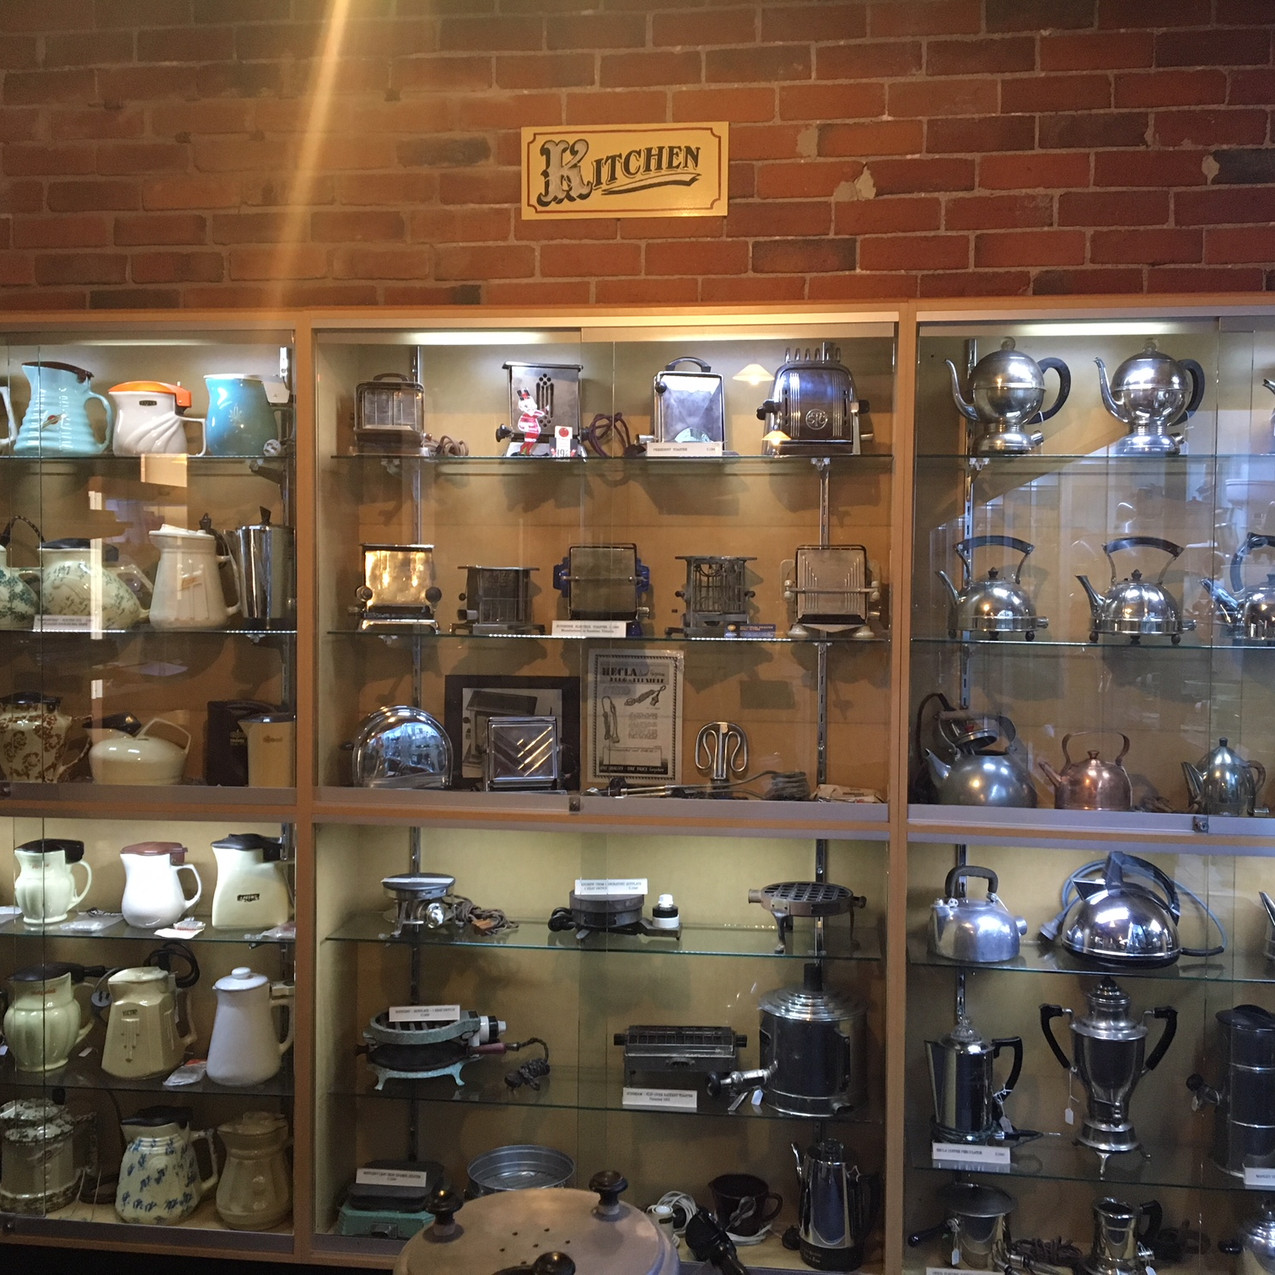 Collection of electrical goods